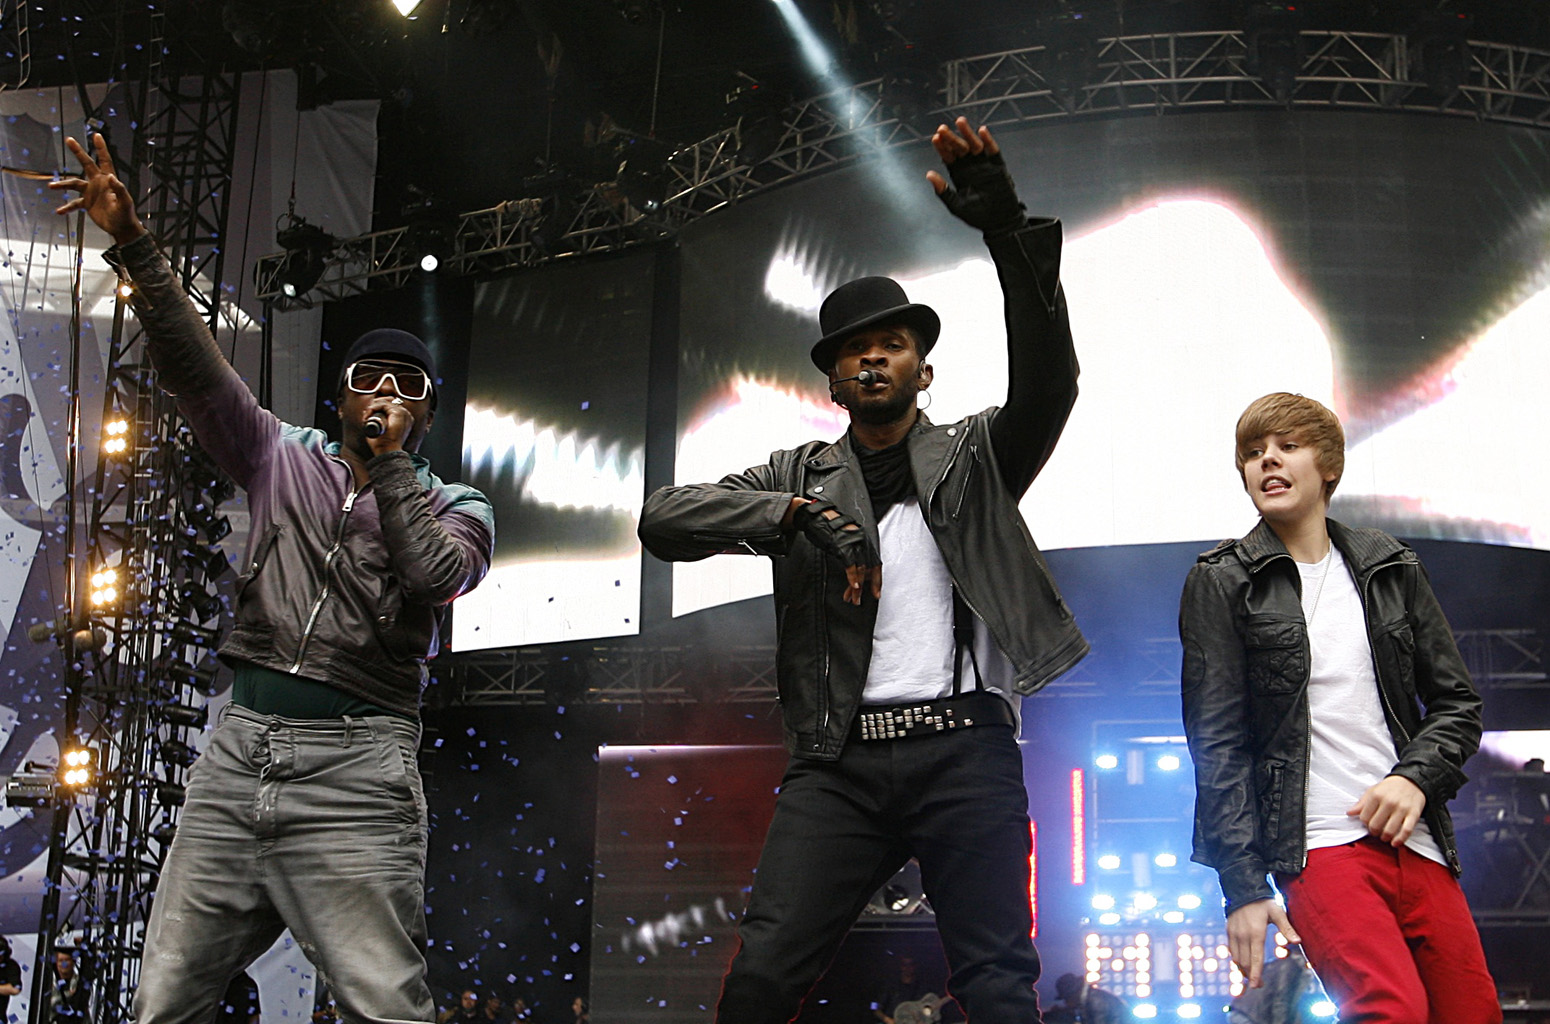 Usher, will.i.am and Justin Bieber Summertime Ball